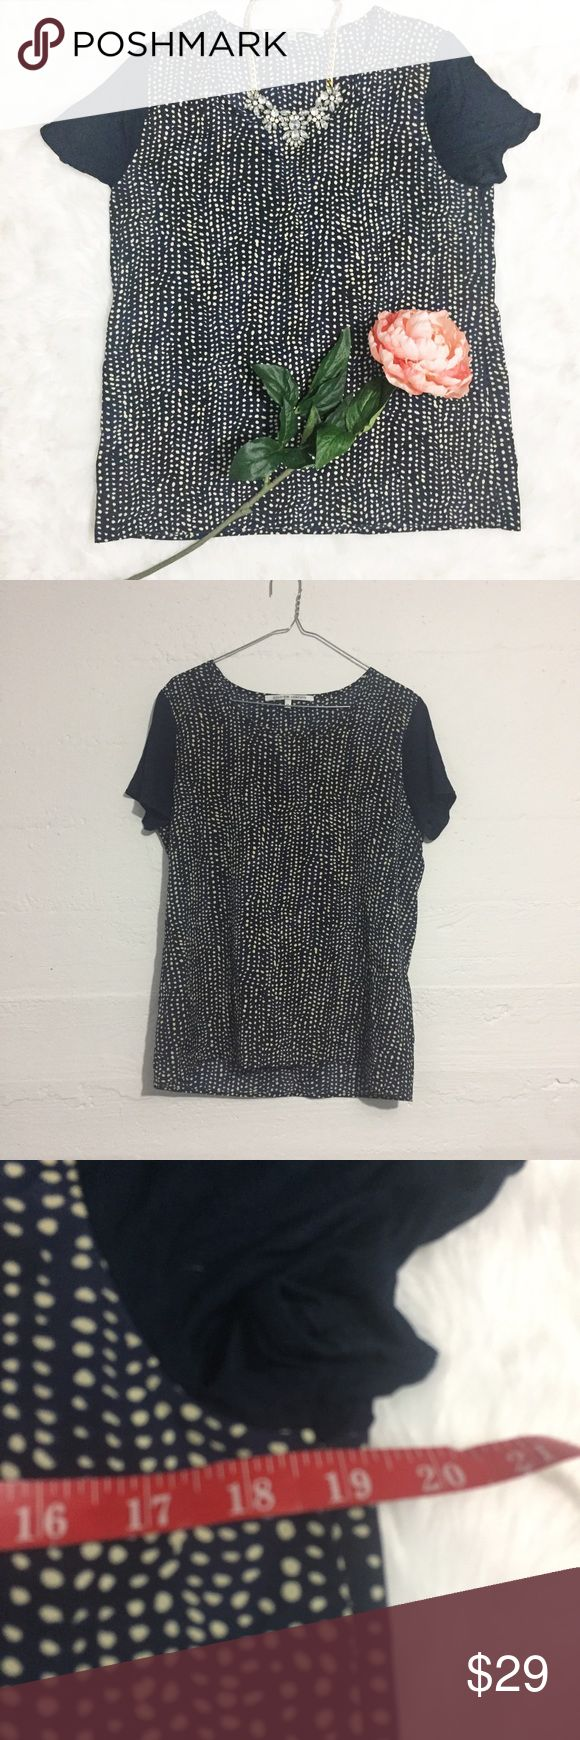 Navy short sleeve top with cream polka dots Navy short sleeve top with cream polka dots is a great piece for the office or everyday! Open to offers. No trades. Tops Blouses